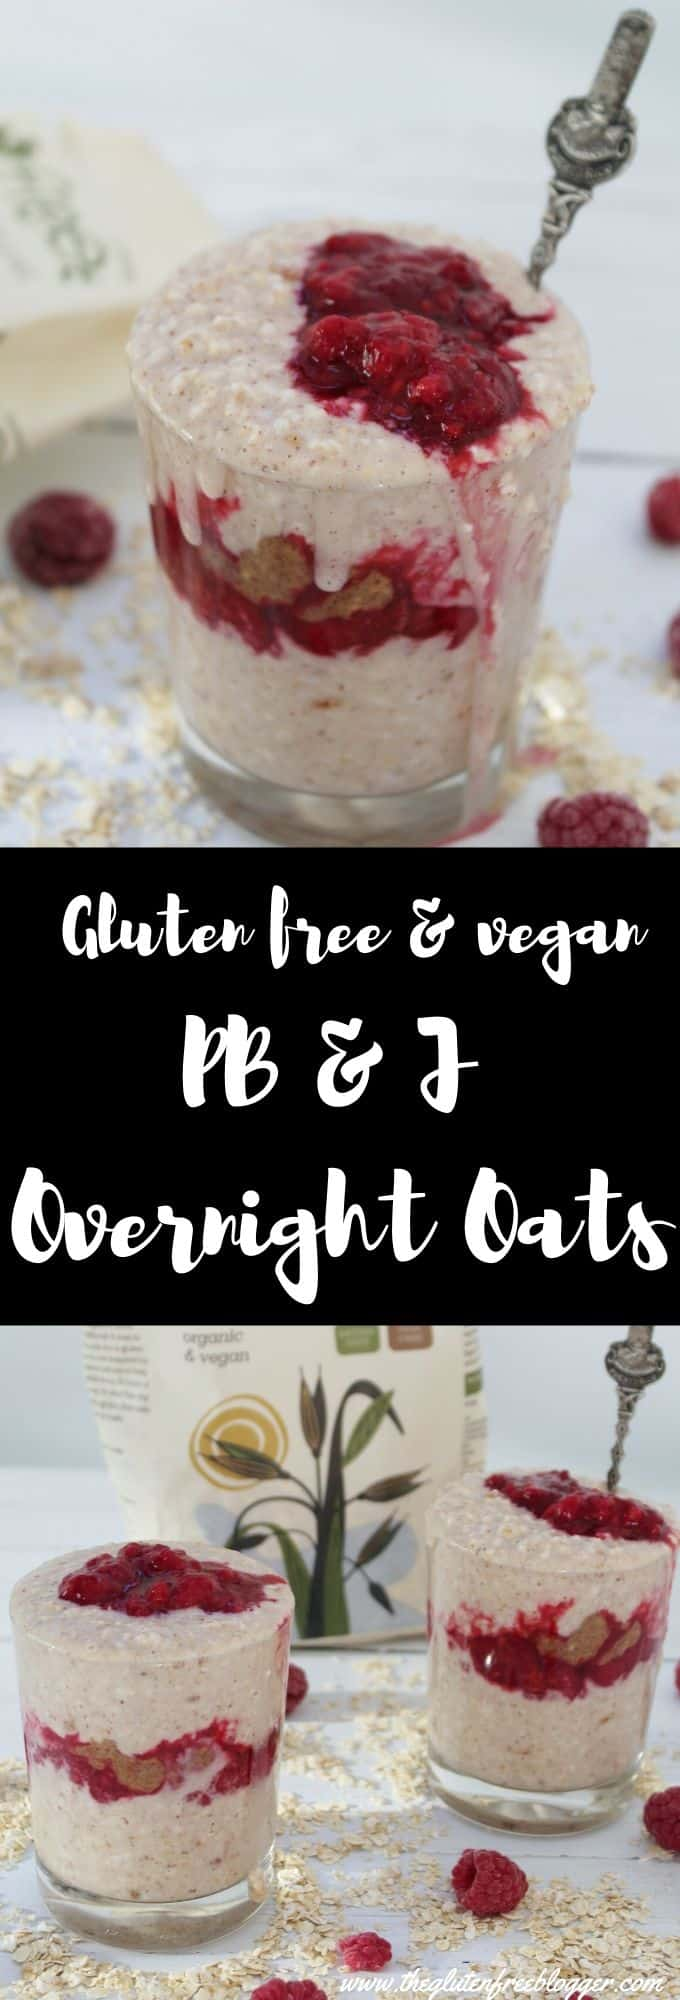 pb&j overnight oats recipe gluten free breakfast ideas coeliac dairy free